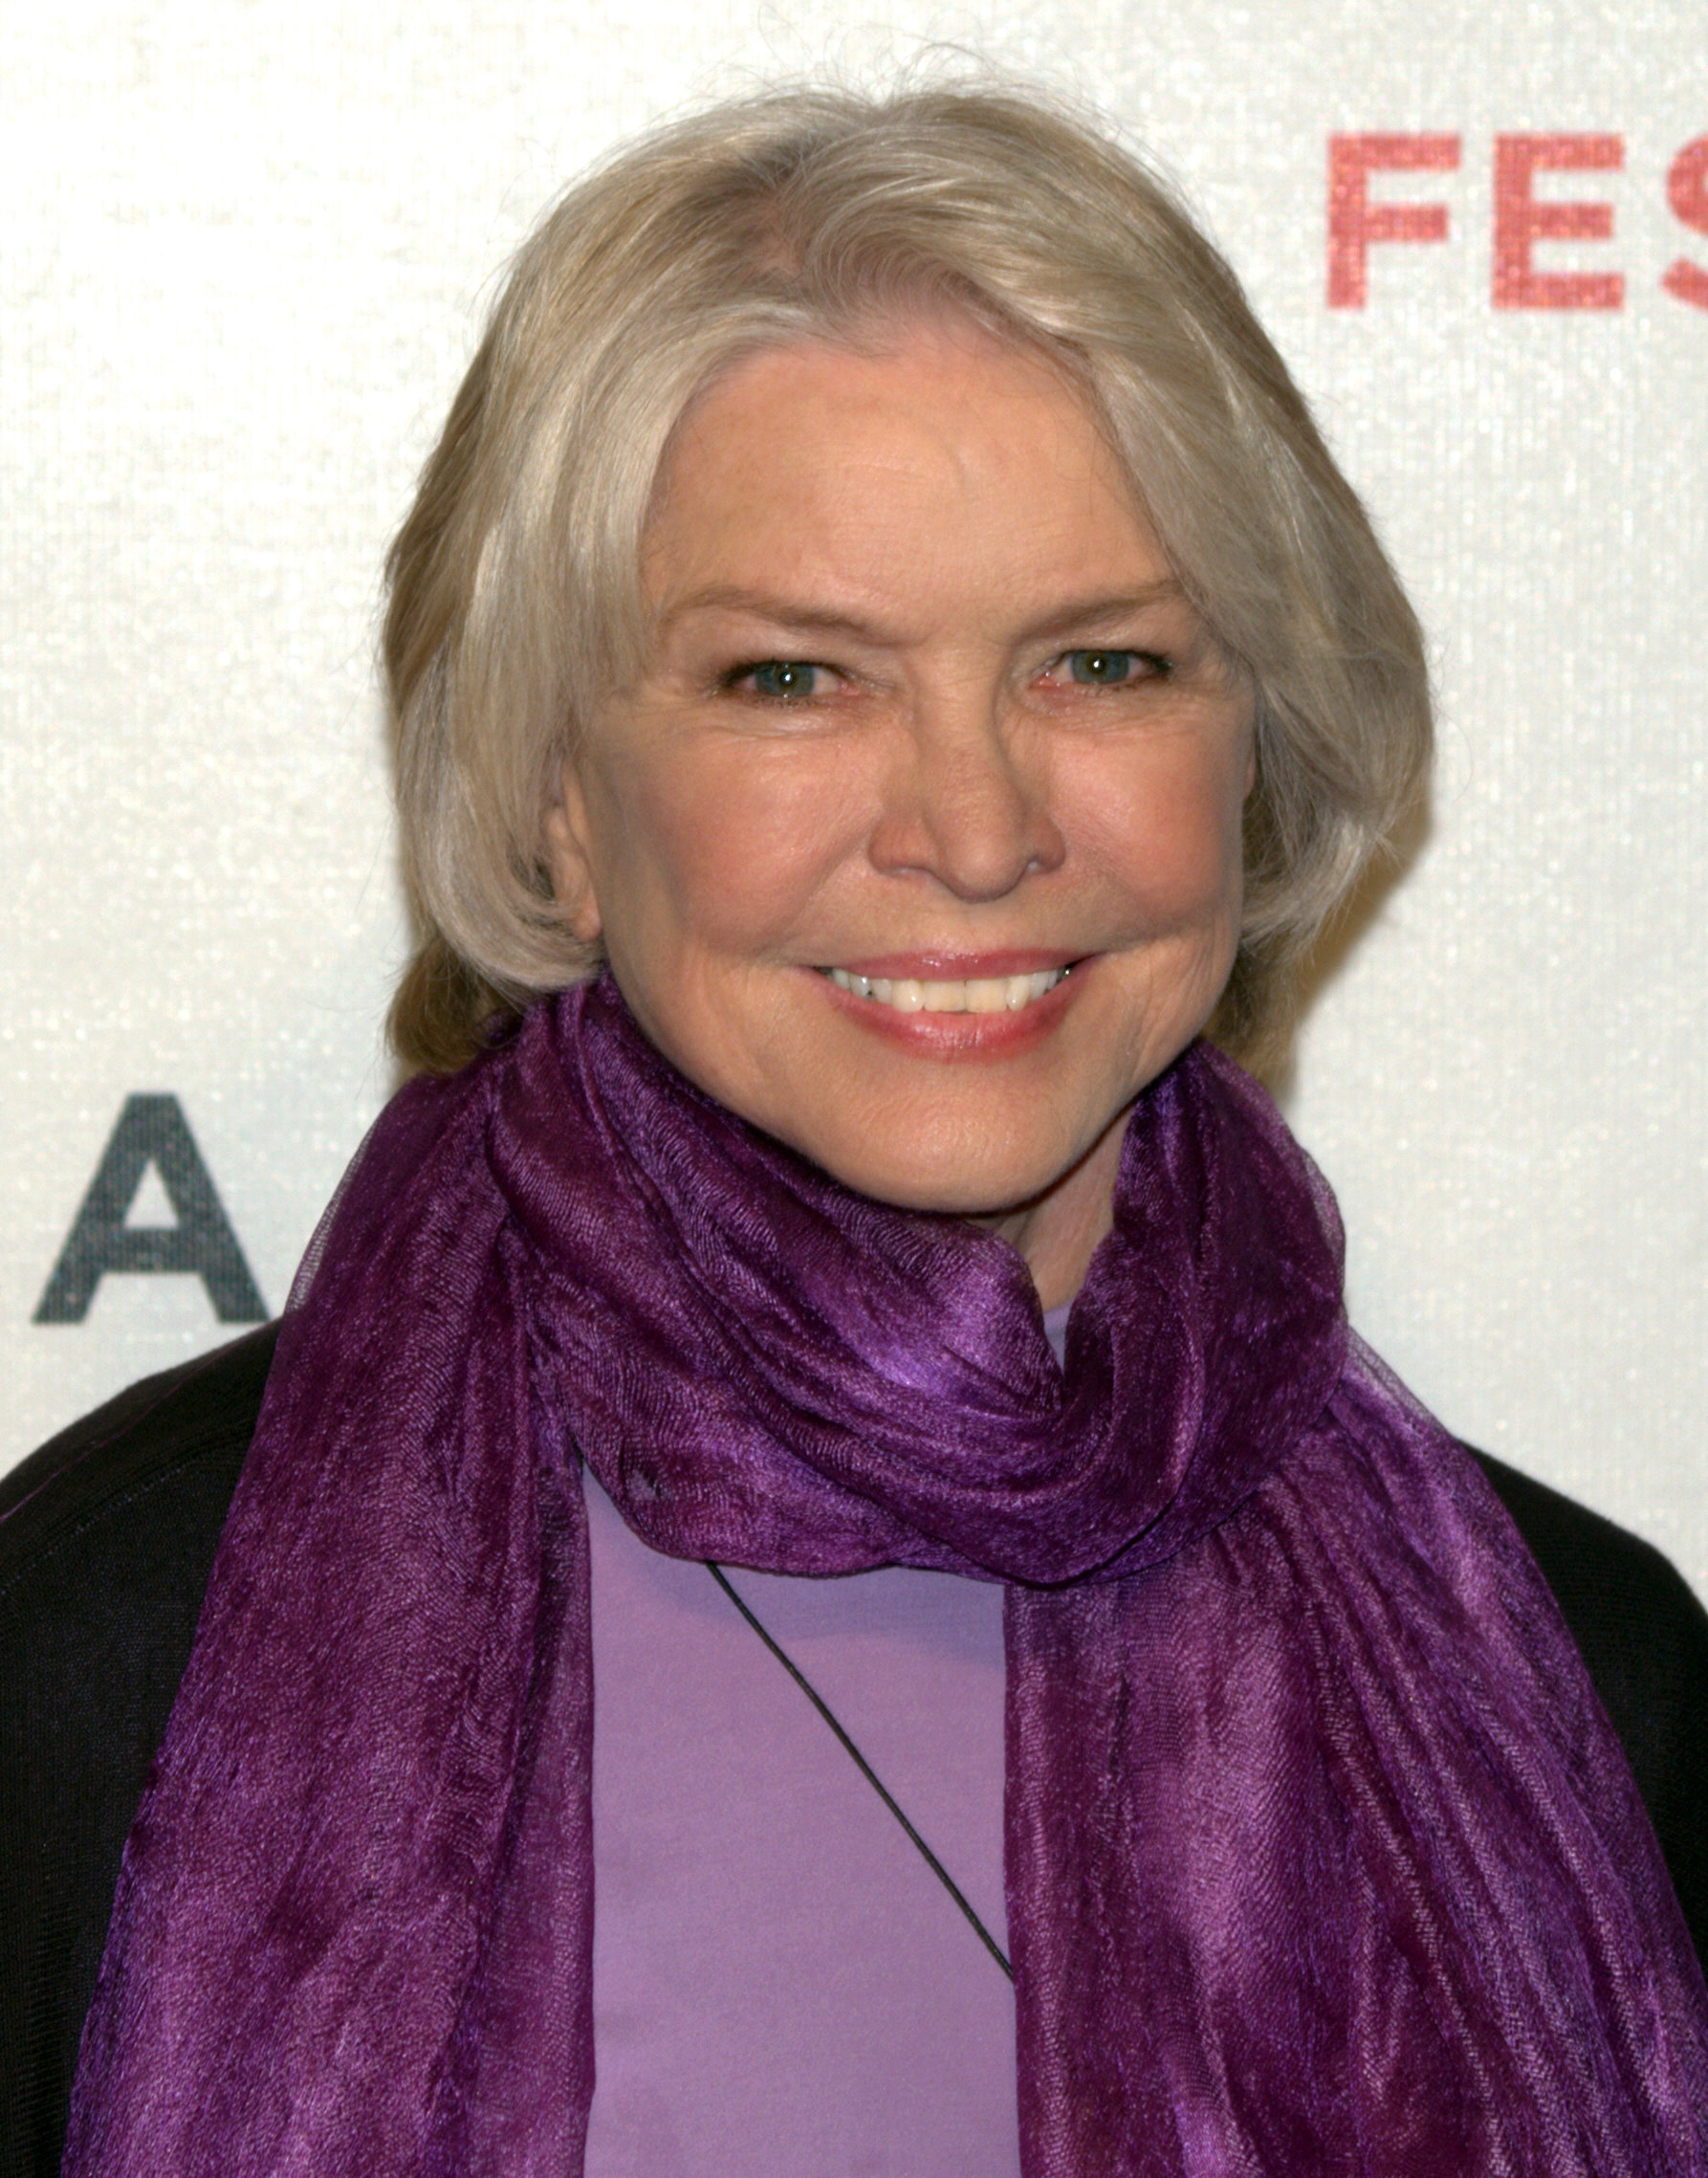 The 86-year old daughter of father John Austin Gillooly and mother Correine Marie Hamel Ellen Burstyn in 2019 photo. Ellen Burstyn earned a  million dollar salary - leaving the net worth at 15 million in 2019